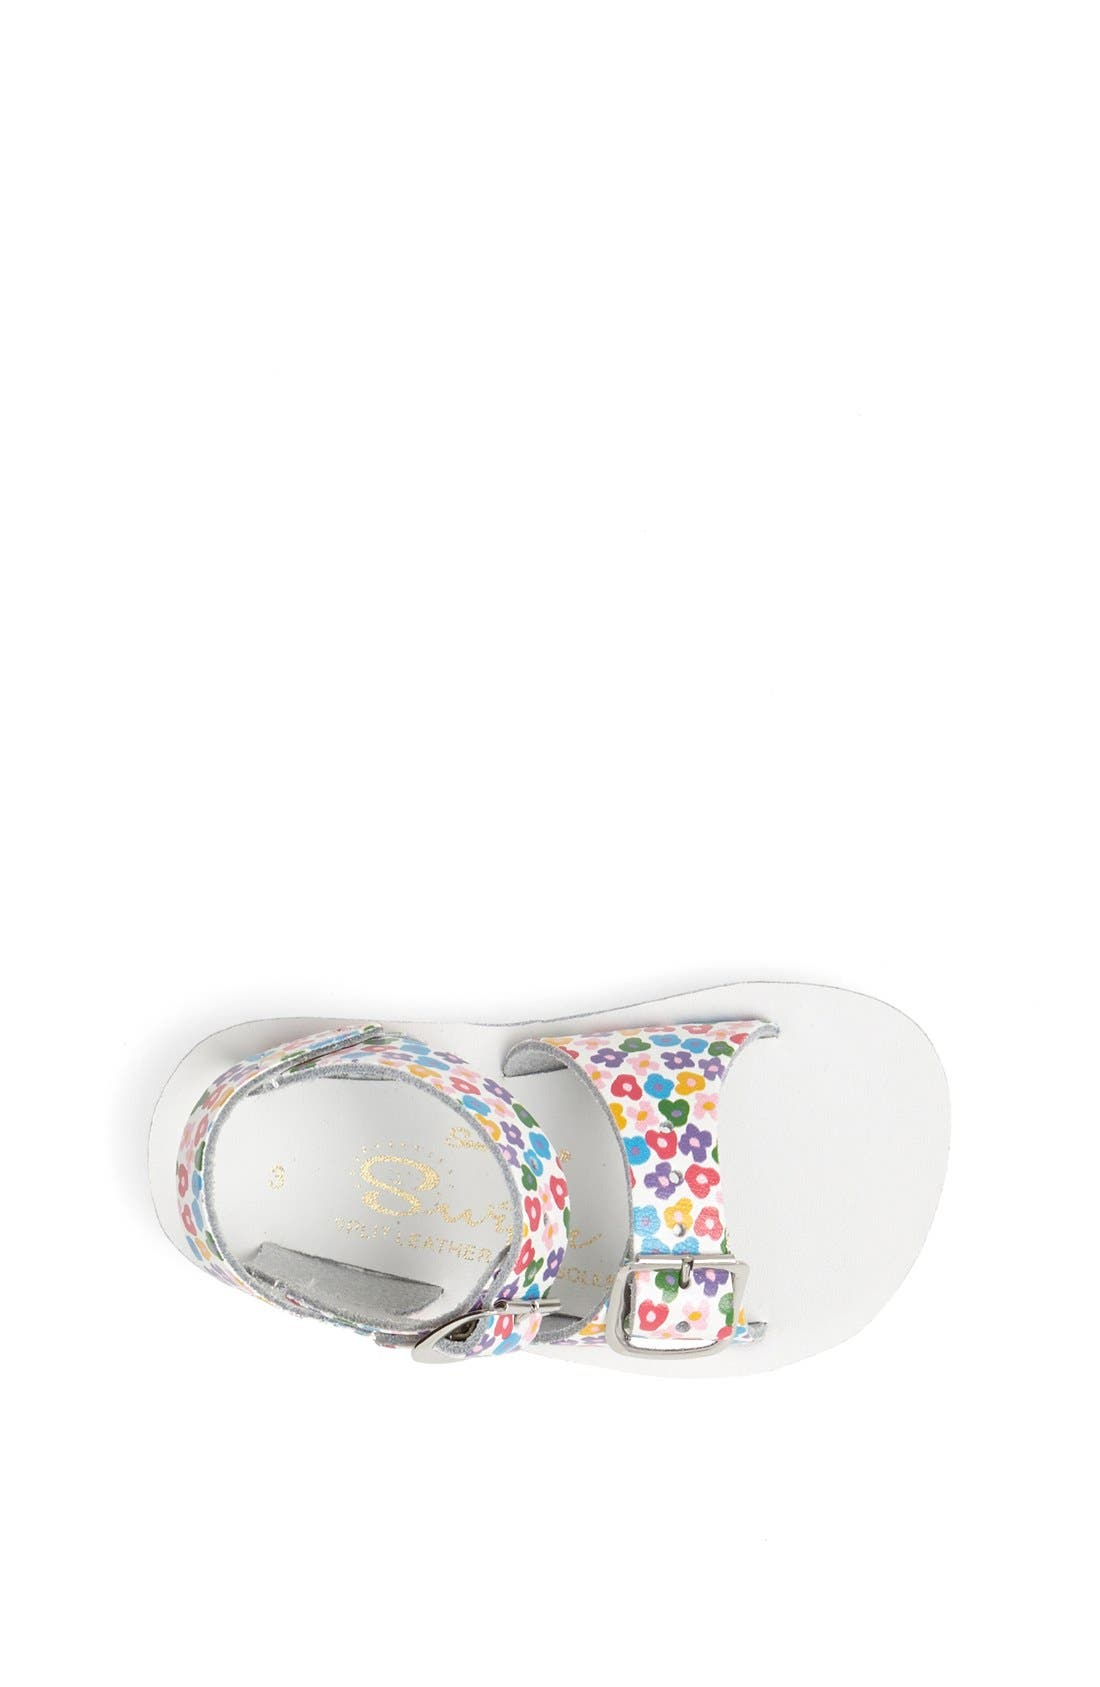 Hoy Shoe Salt-Water<sup>®</sup> Sandals 'Surfer' Sandal,                             Alternate thumbnail 3, color,                             Floral